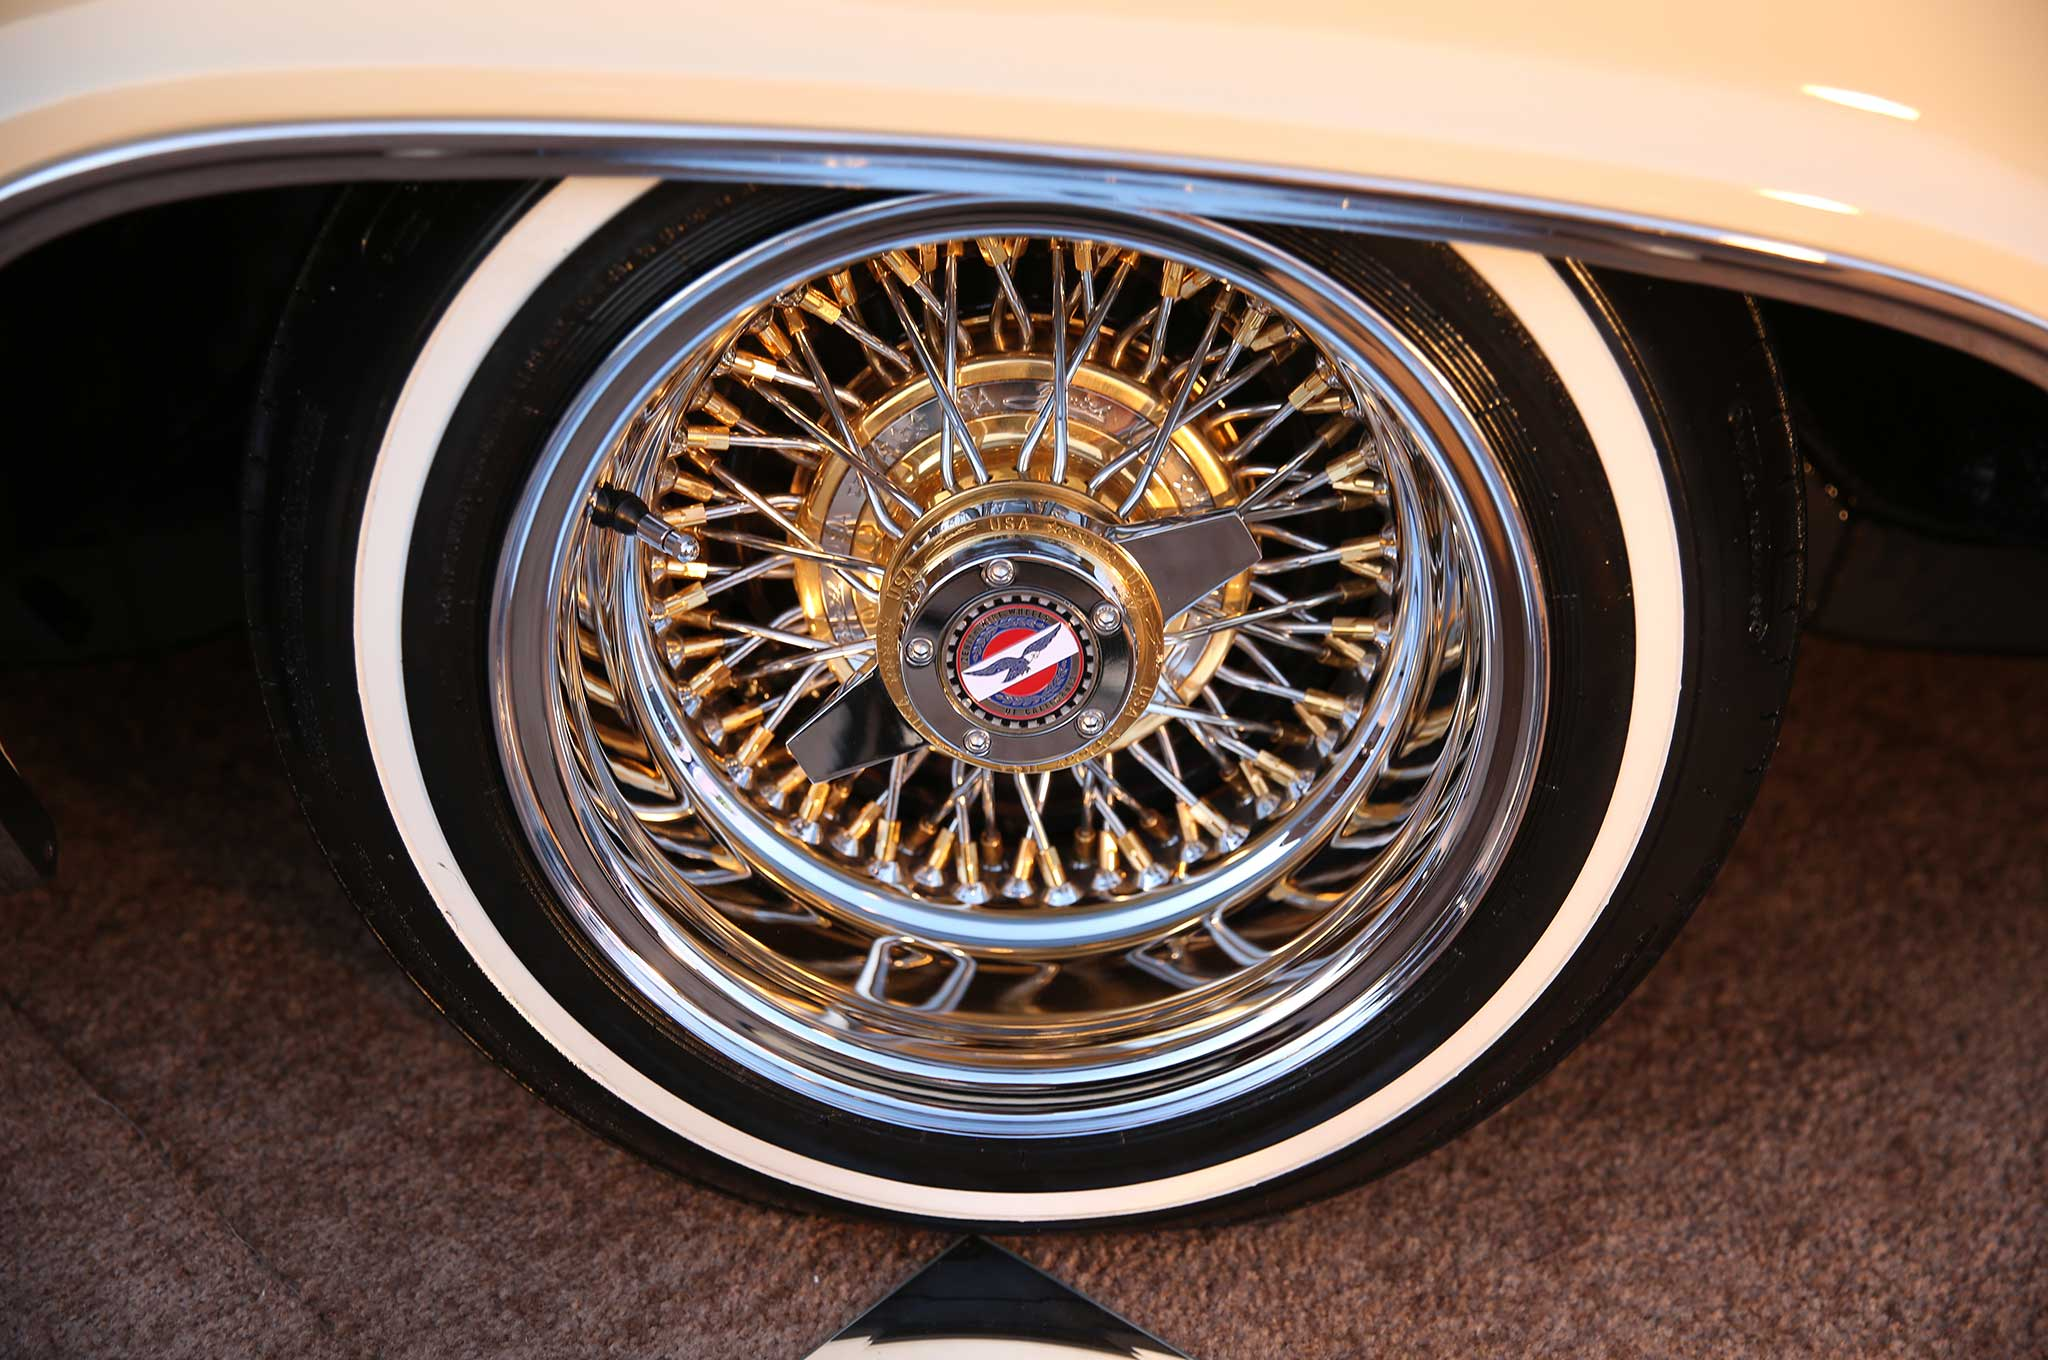 Zenith Wire Wheels For Sale Craigslist Trusted Wiring Diagram Layitlow Og Photos